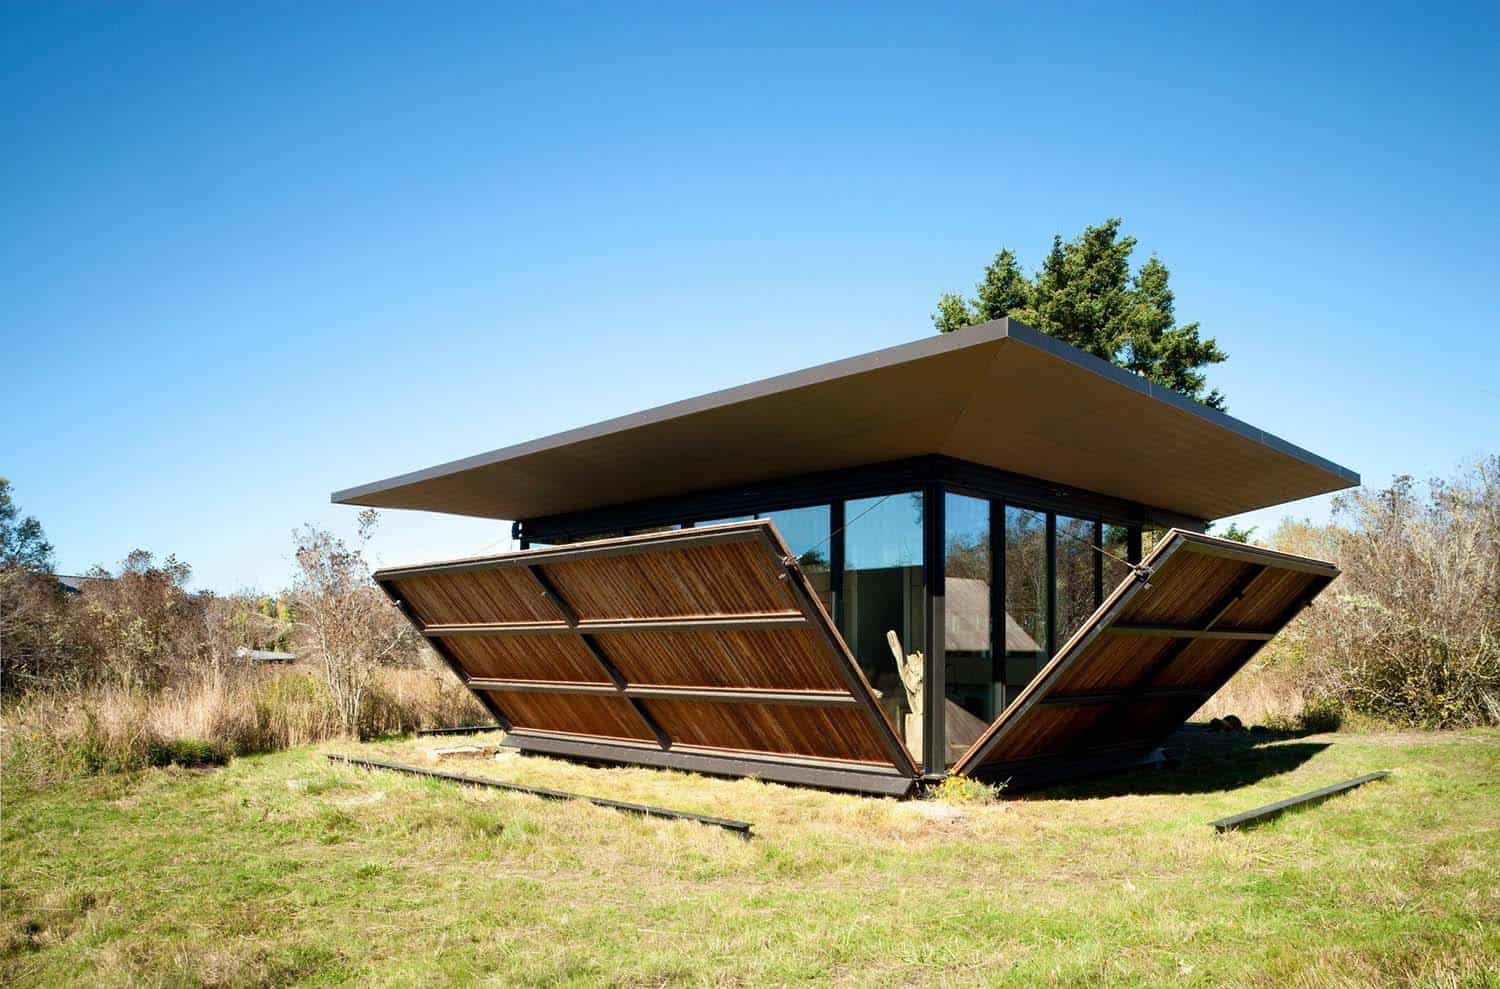 Tiny Modern Cabin-Olson Kundig Architects-05-1 Kindesign